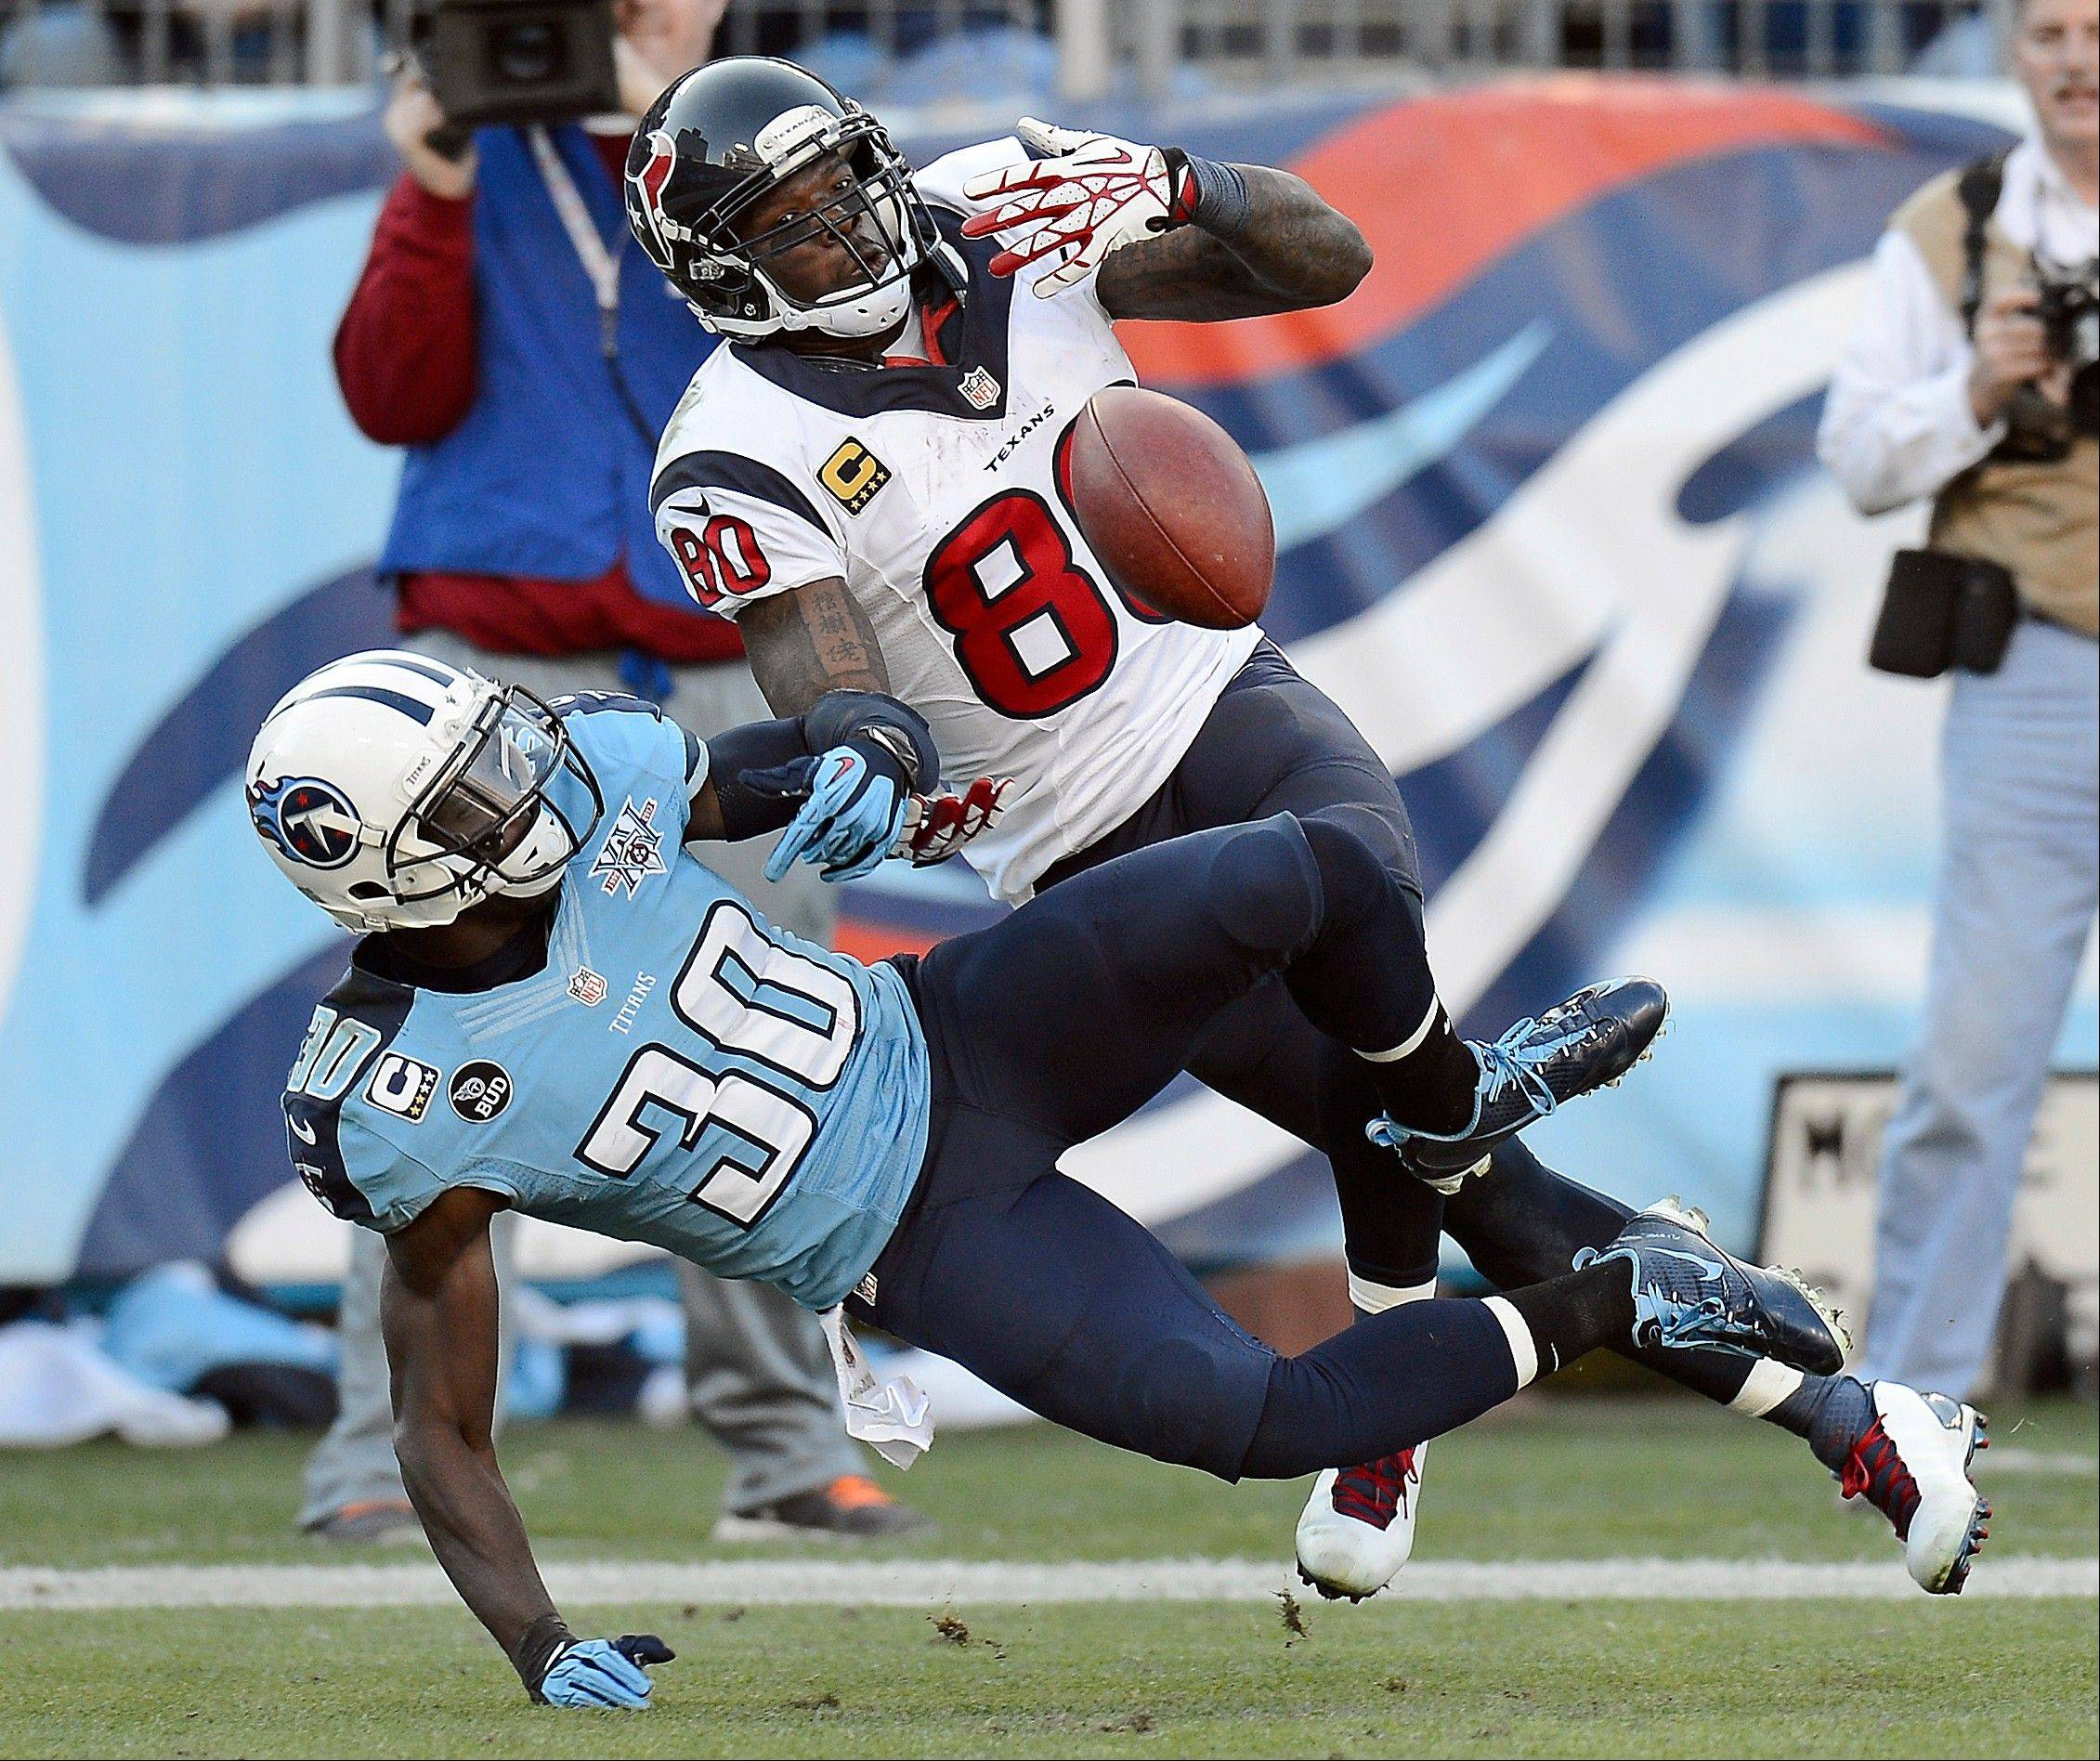 Tennessee Titans cornerback Jason McCourty, left, breaks up a pass intended for Houston Texans wide receiver Andre Johnson in the fourth quarter of Sunday�s game in Nashville, Tenn.